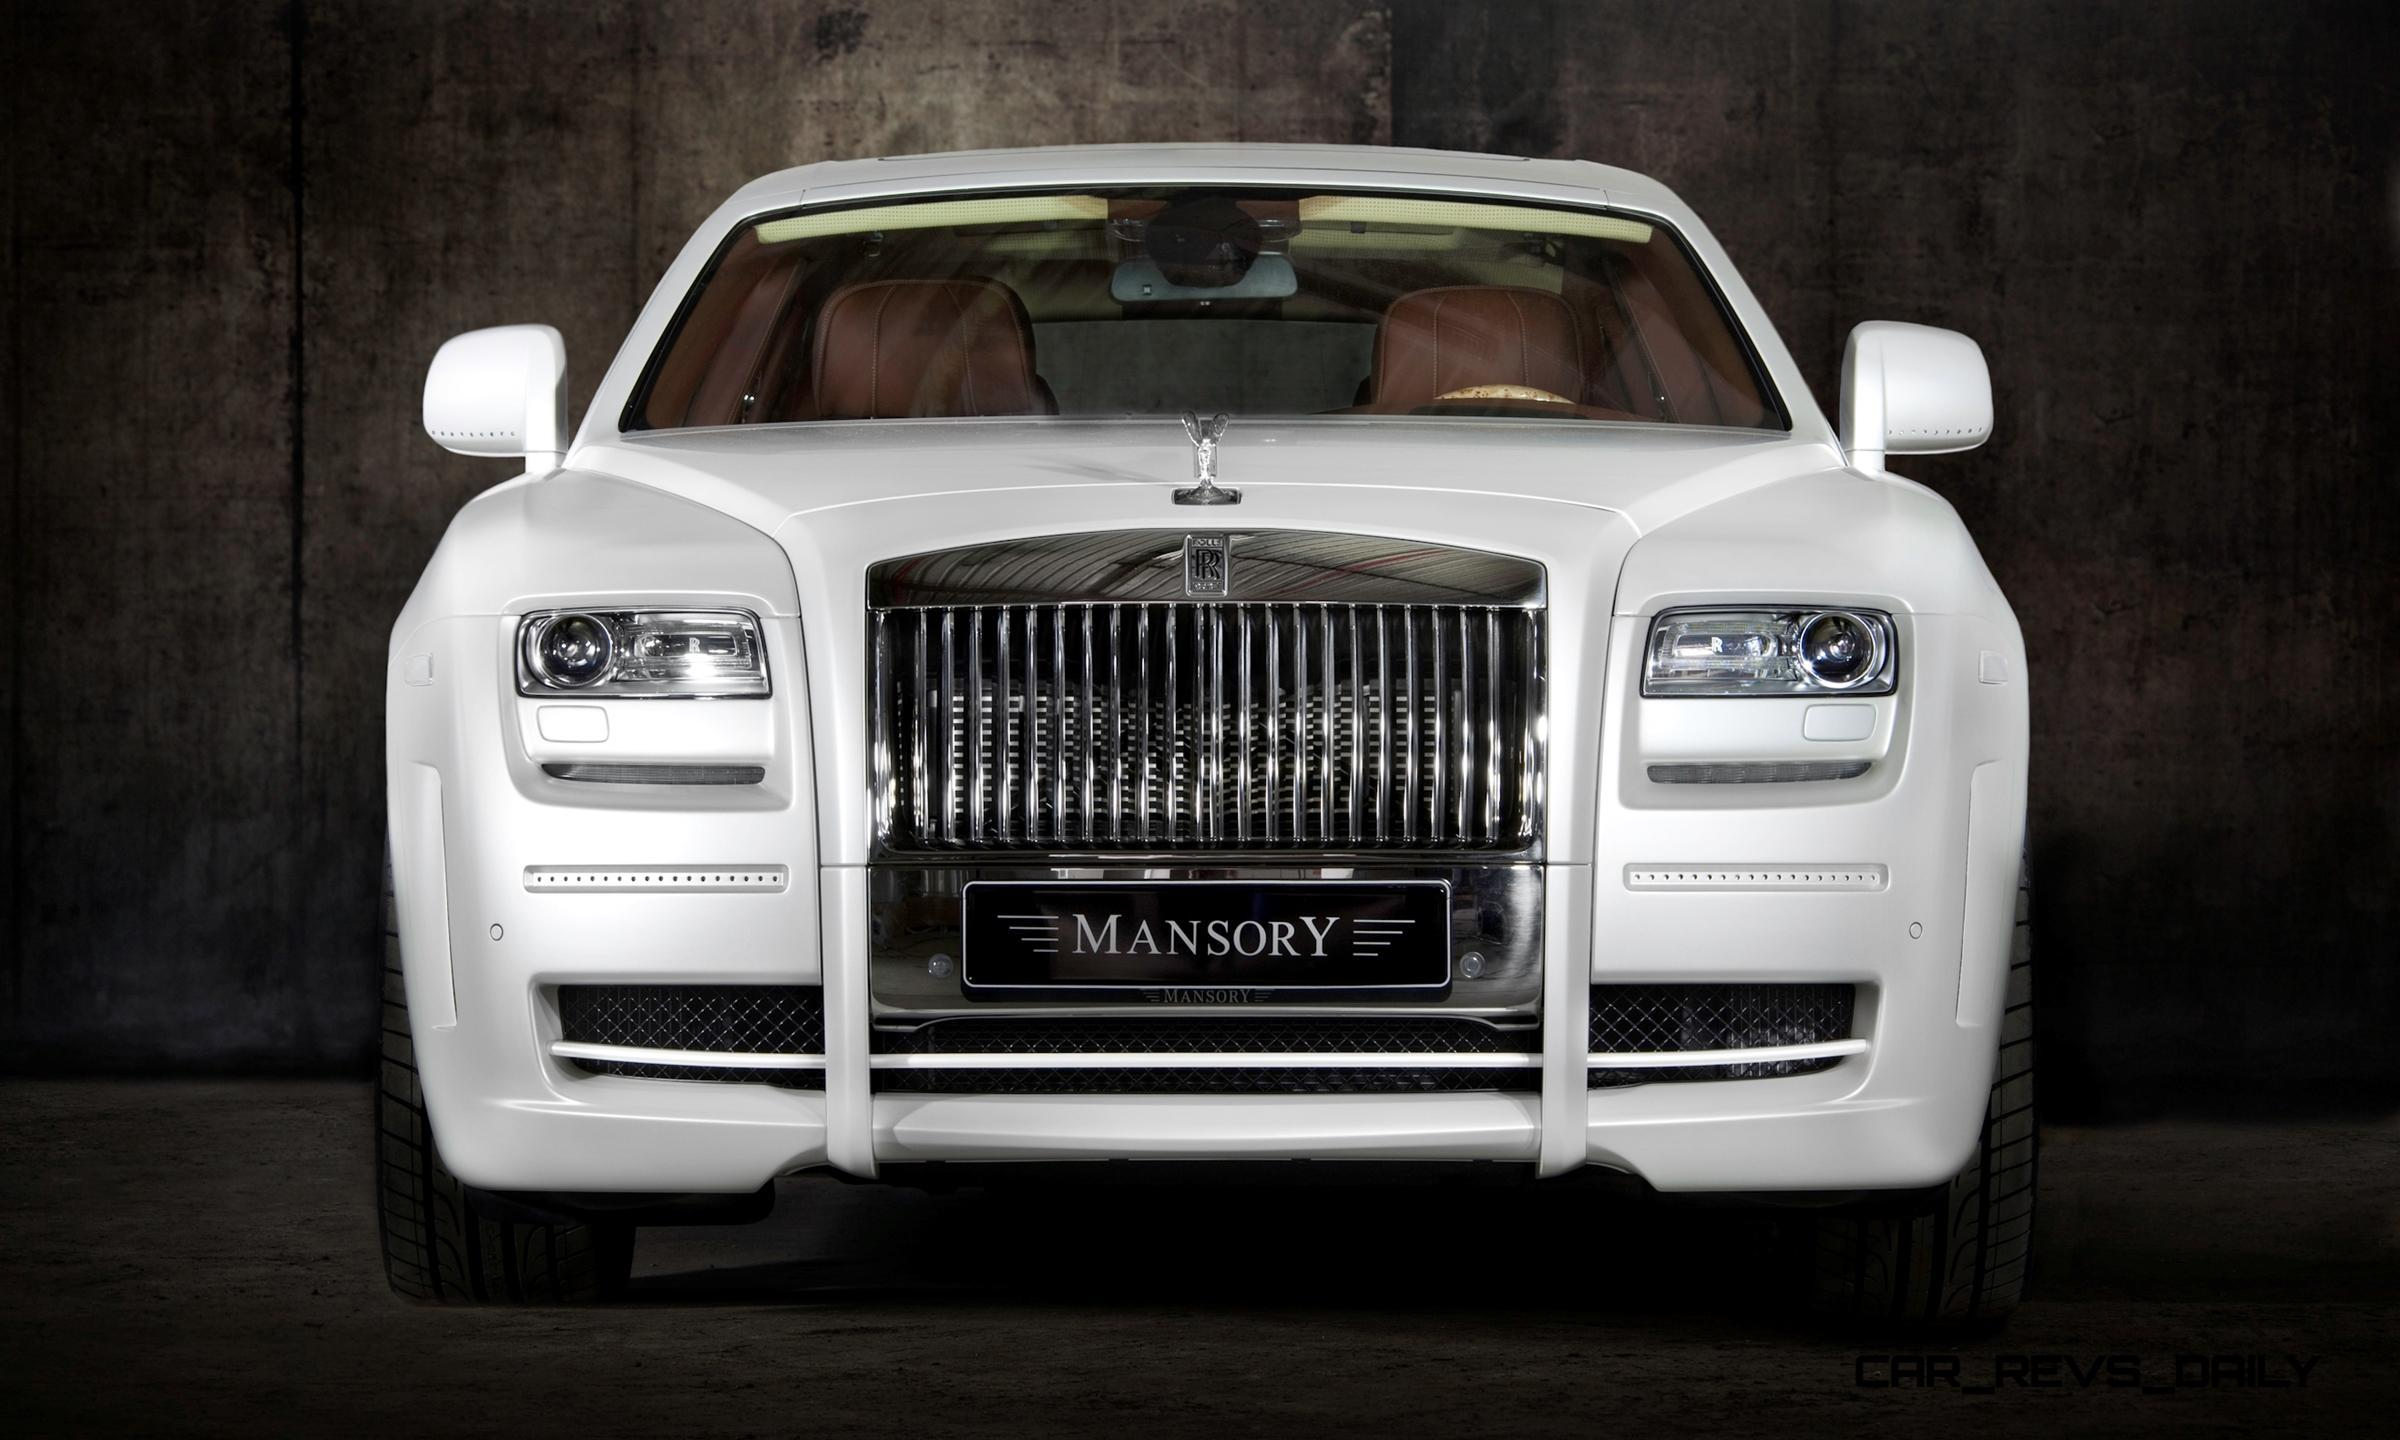 Mansory Rolls Royce Ghost Upgrades In White And Electric Blue Gold